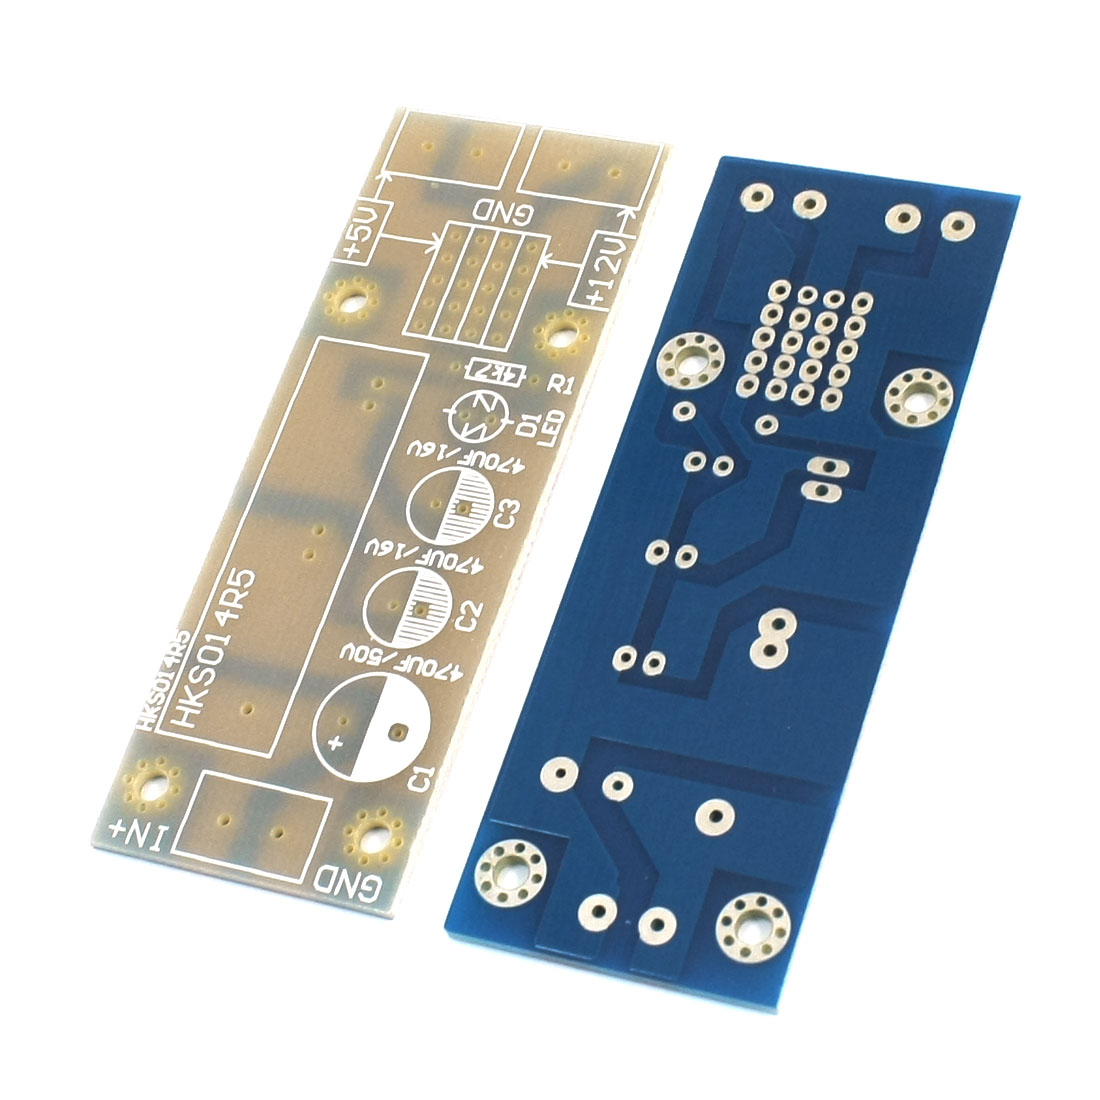 DC 48 to 5V 12V HKS014R5 Regulated Power Supply Module Blank Board 2pcs